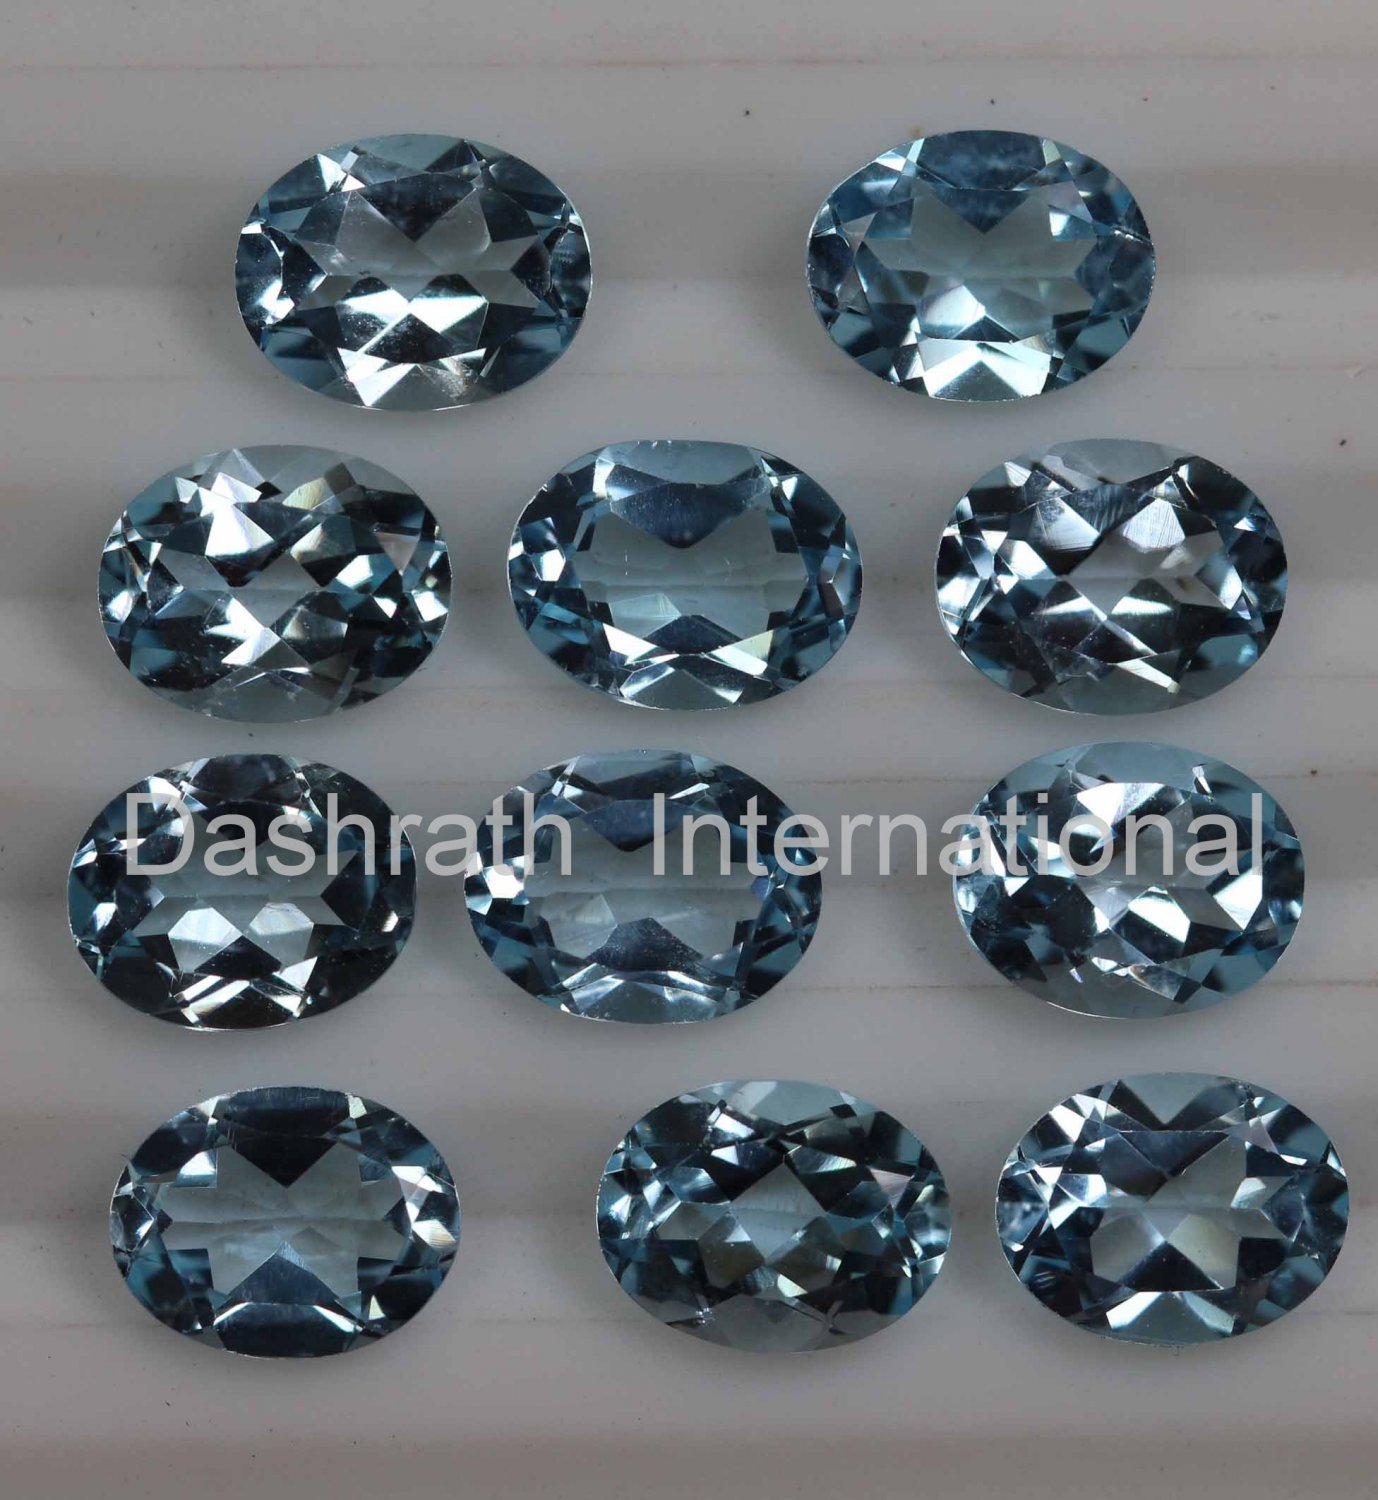 5x3mm Natural Sky Blue Topaz Faceted Cut Oval  5 Pieces Lot  Top Quality Loose Gemstone